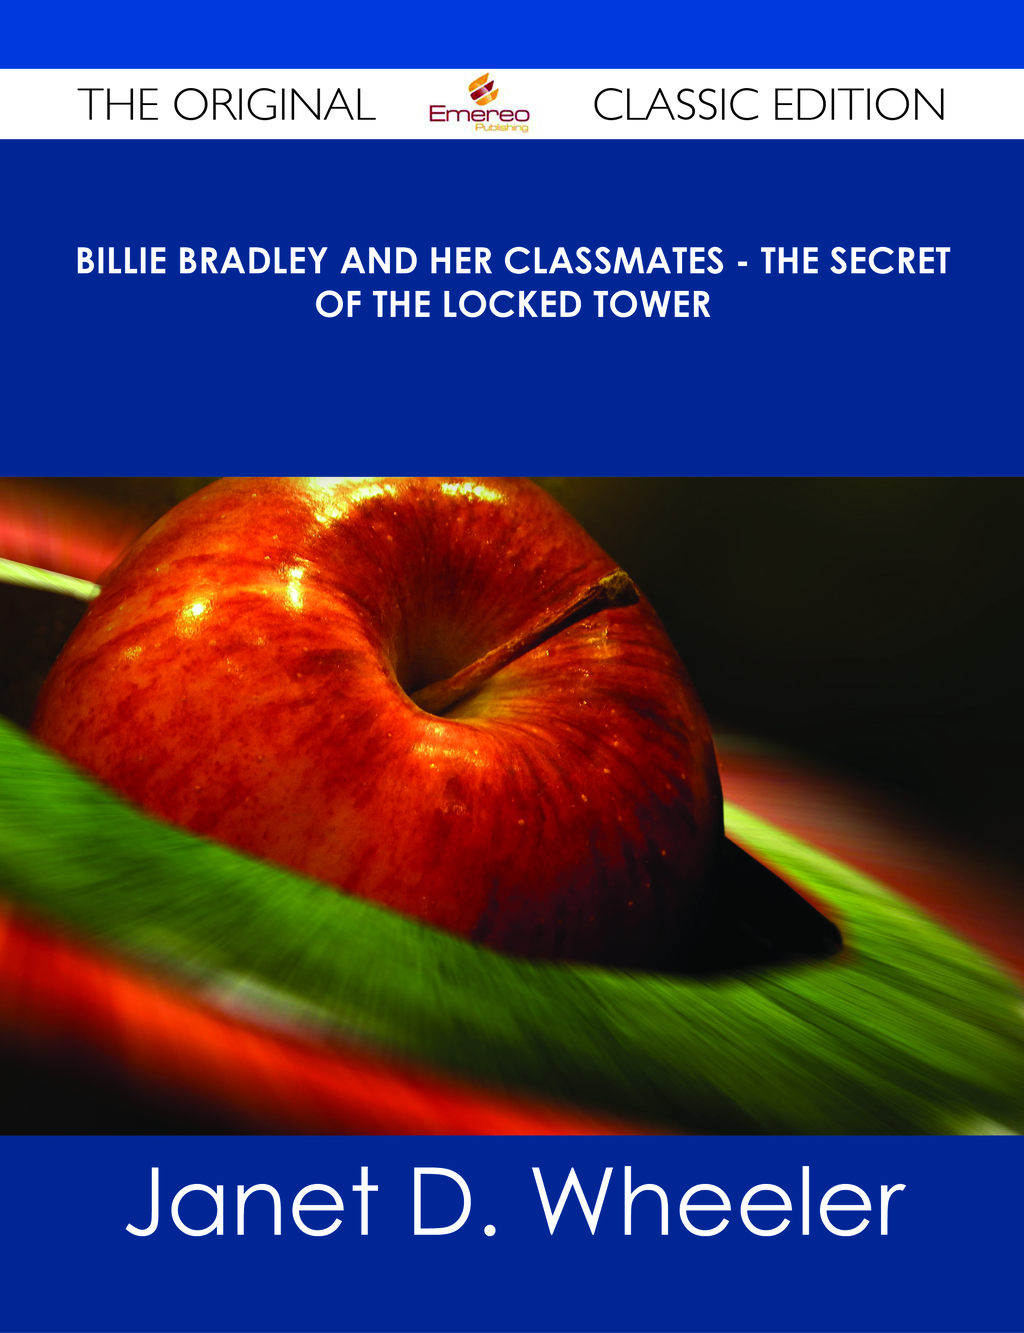 Billie Bradley and Her Classmates - The Secret of the Locked Tower - The Original Classic Edition